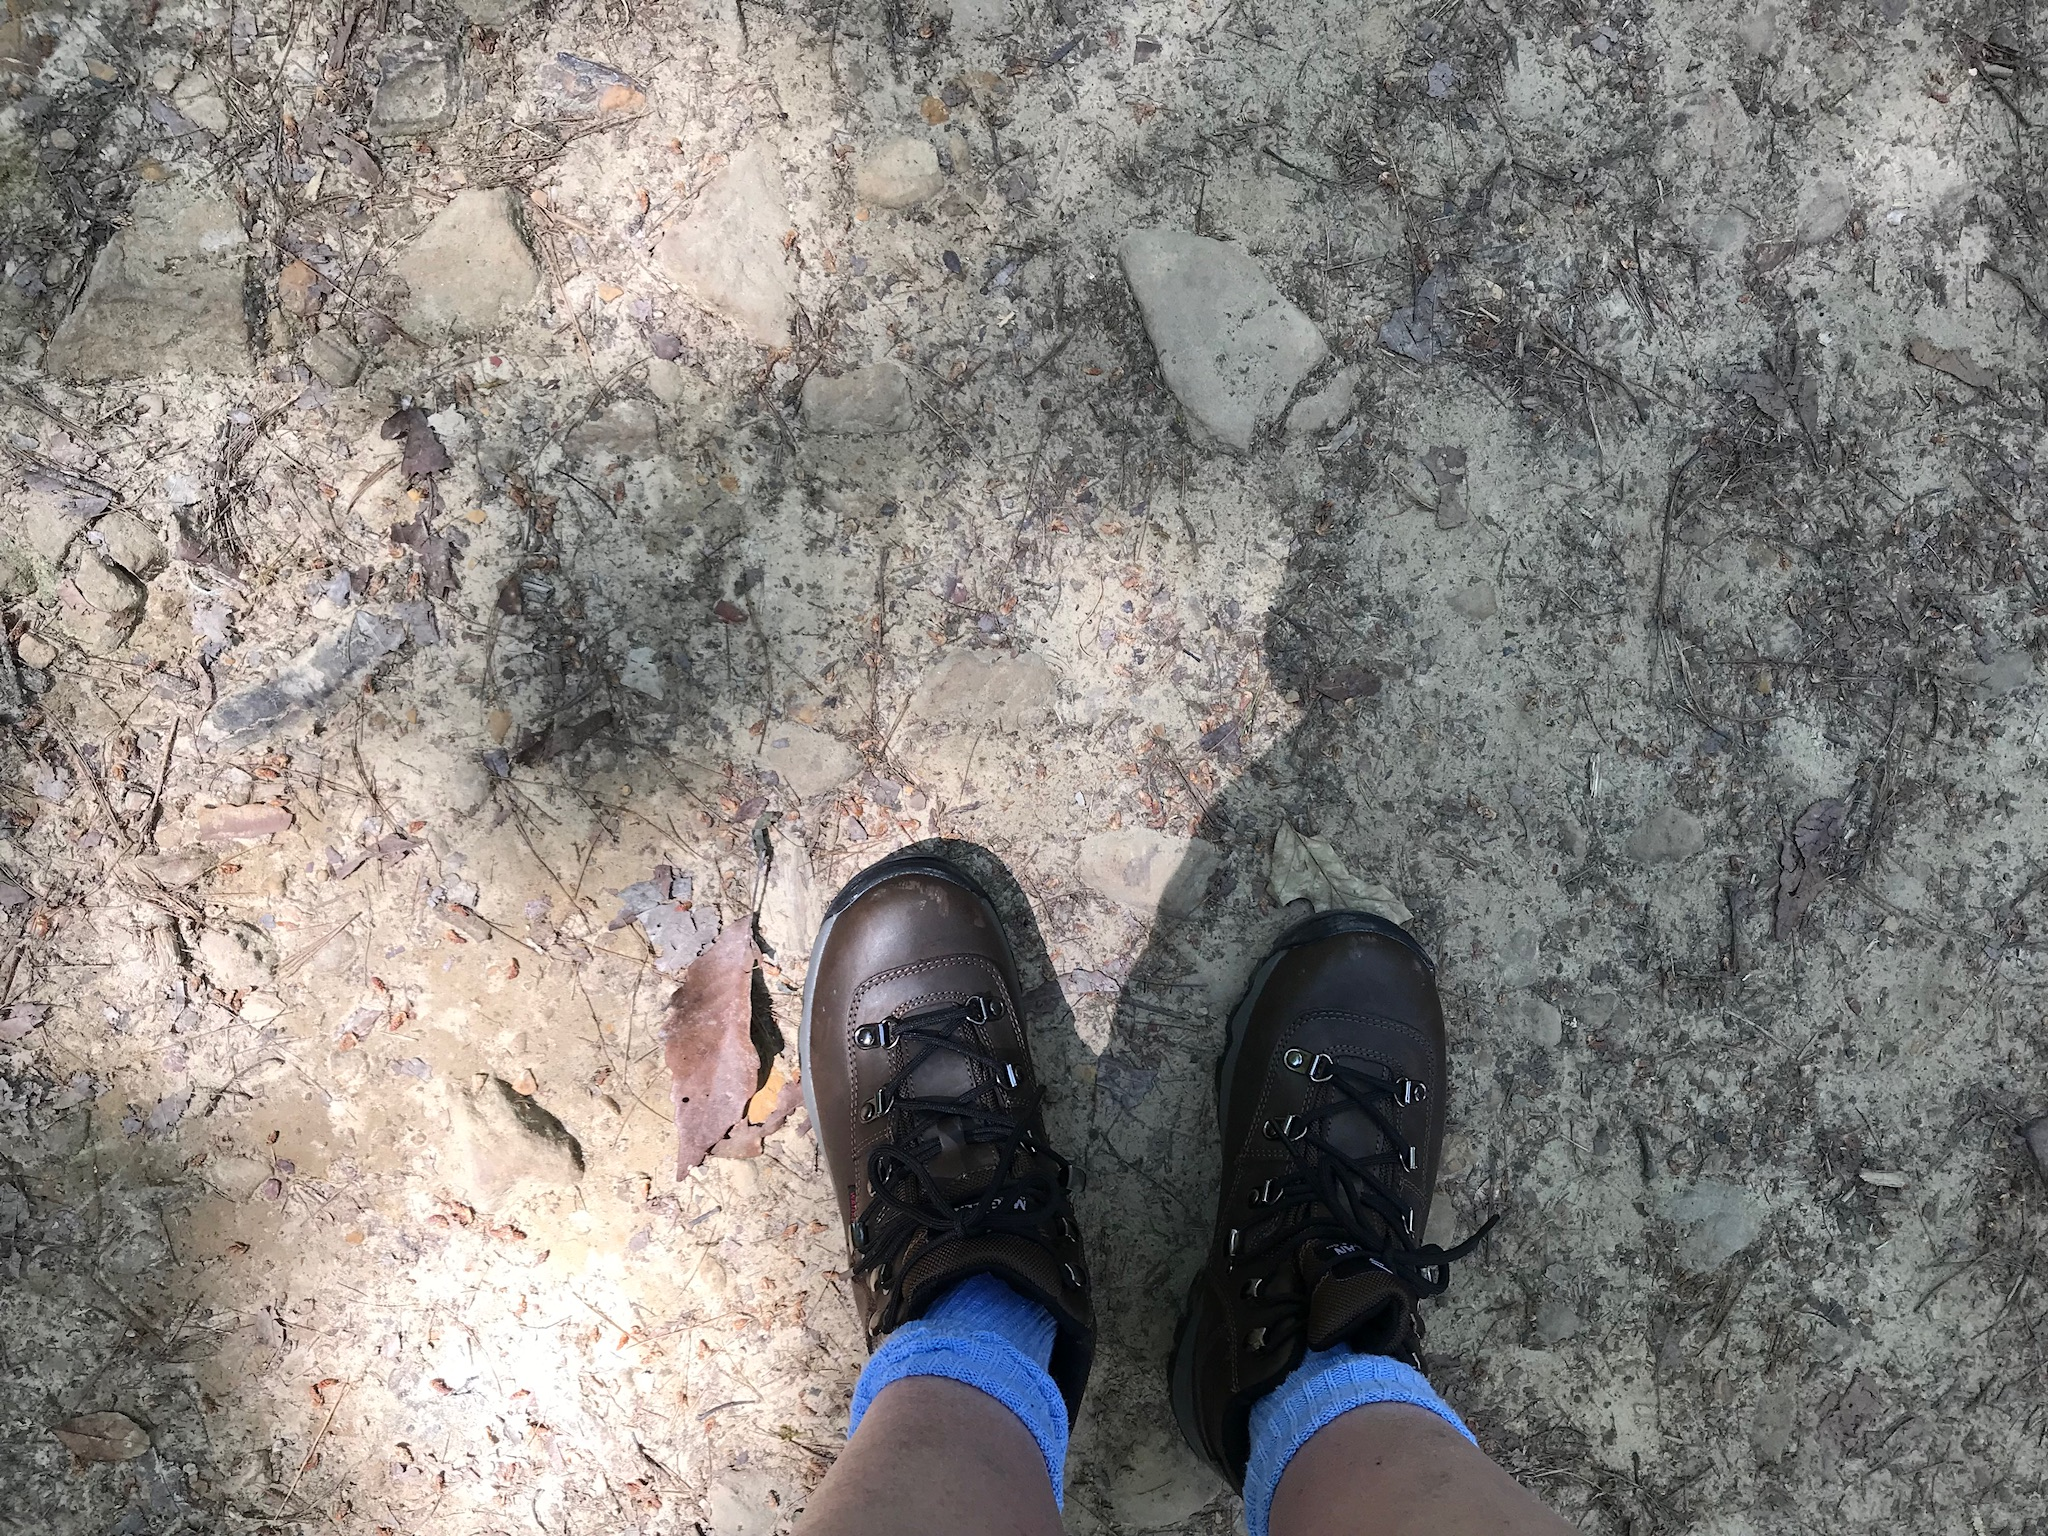 My new hiking boots are now DIRTY!!!!  Photo taken by and the property of FourWalls.